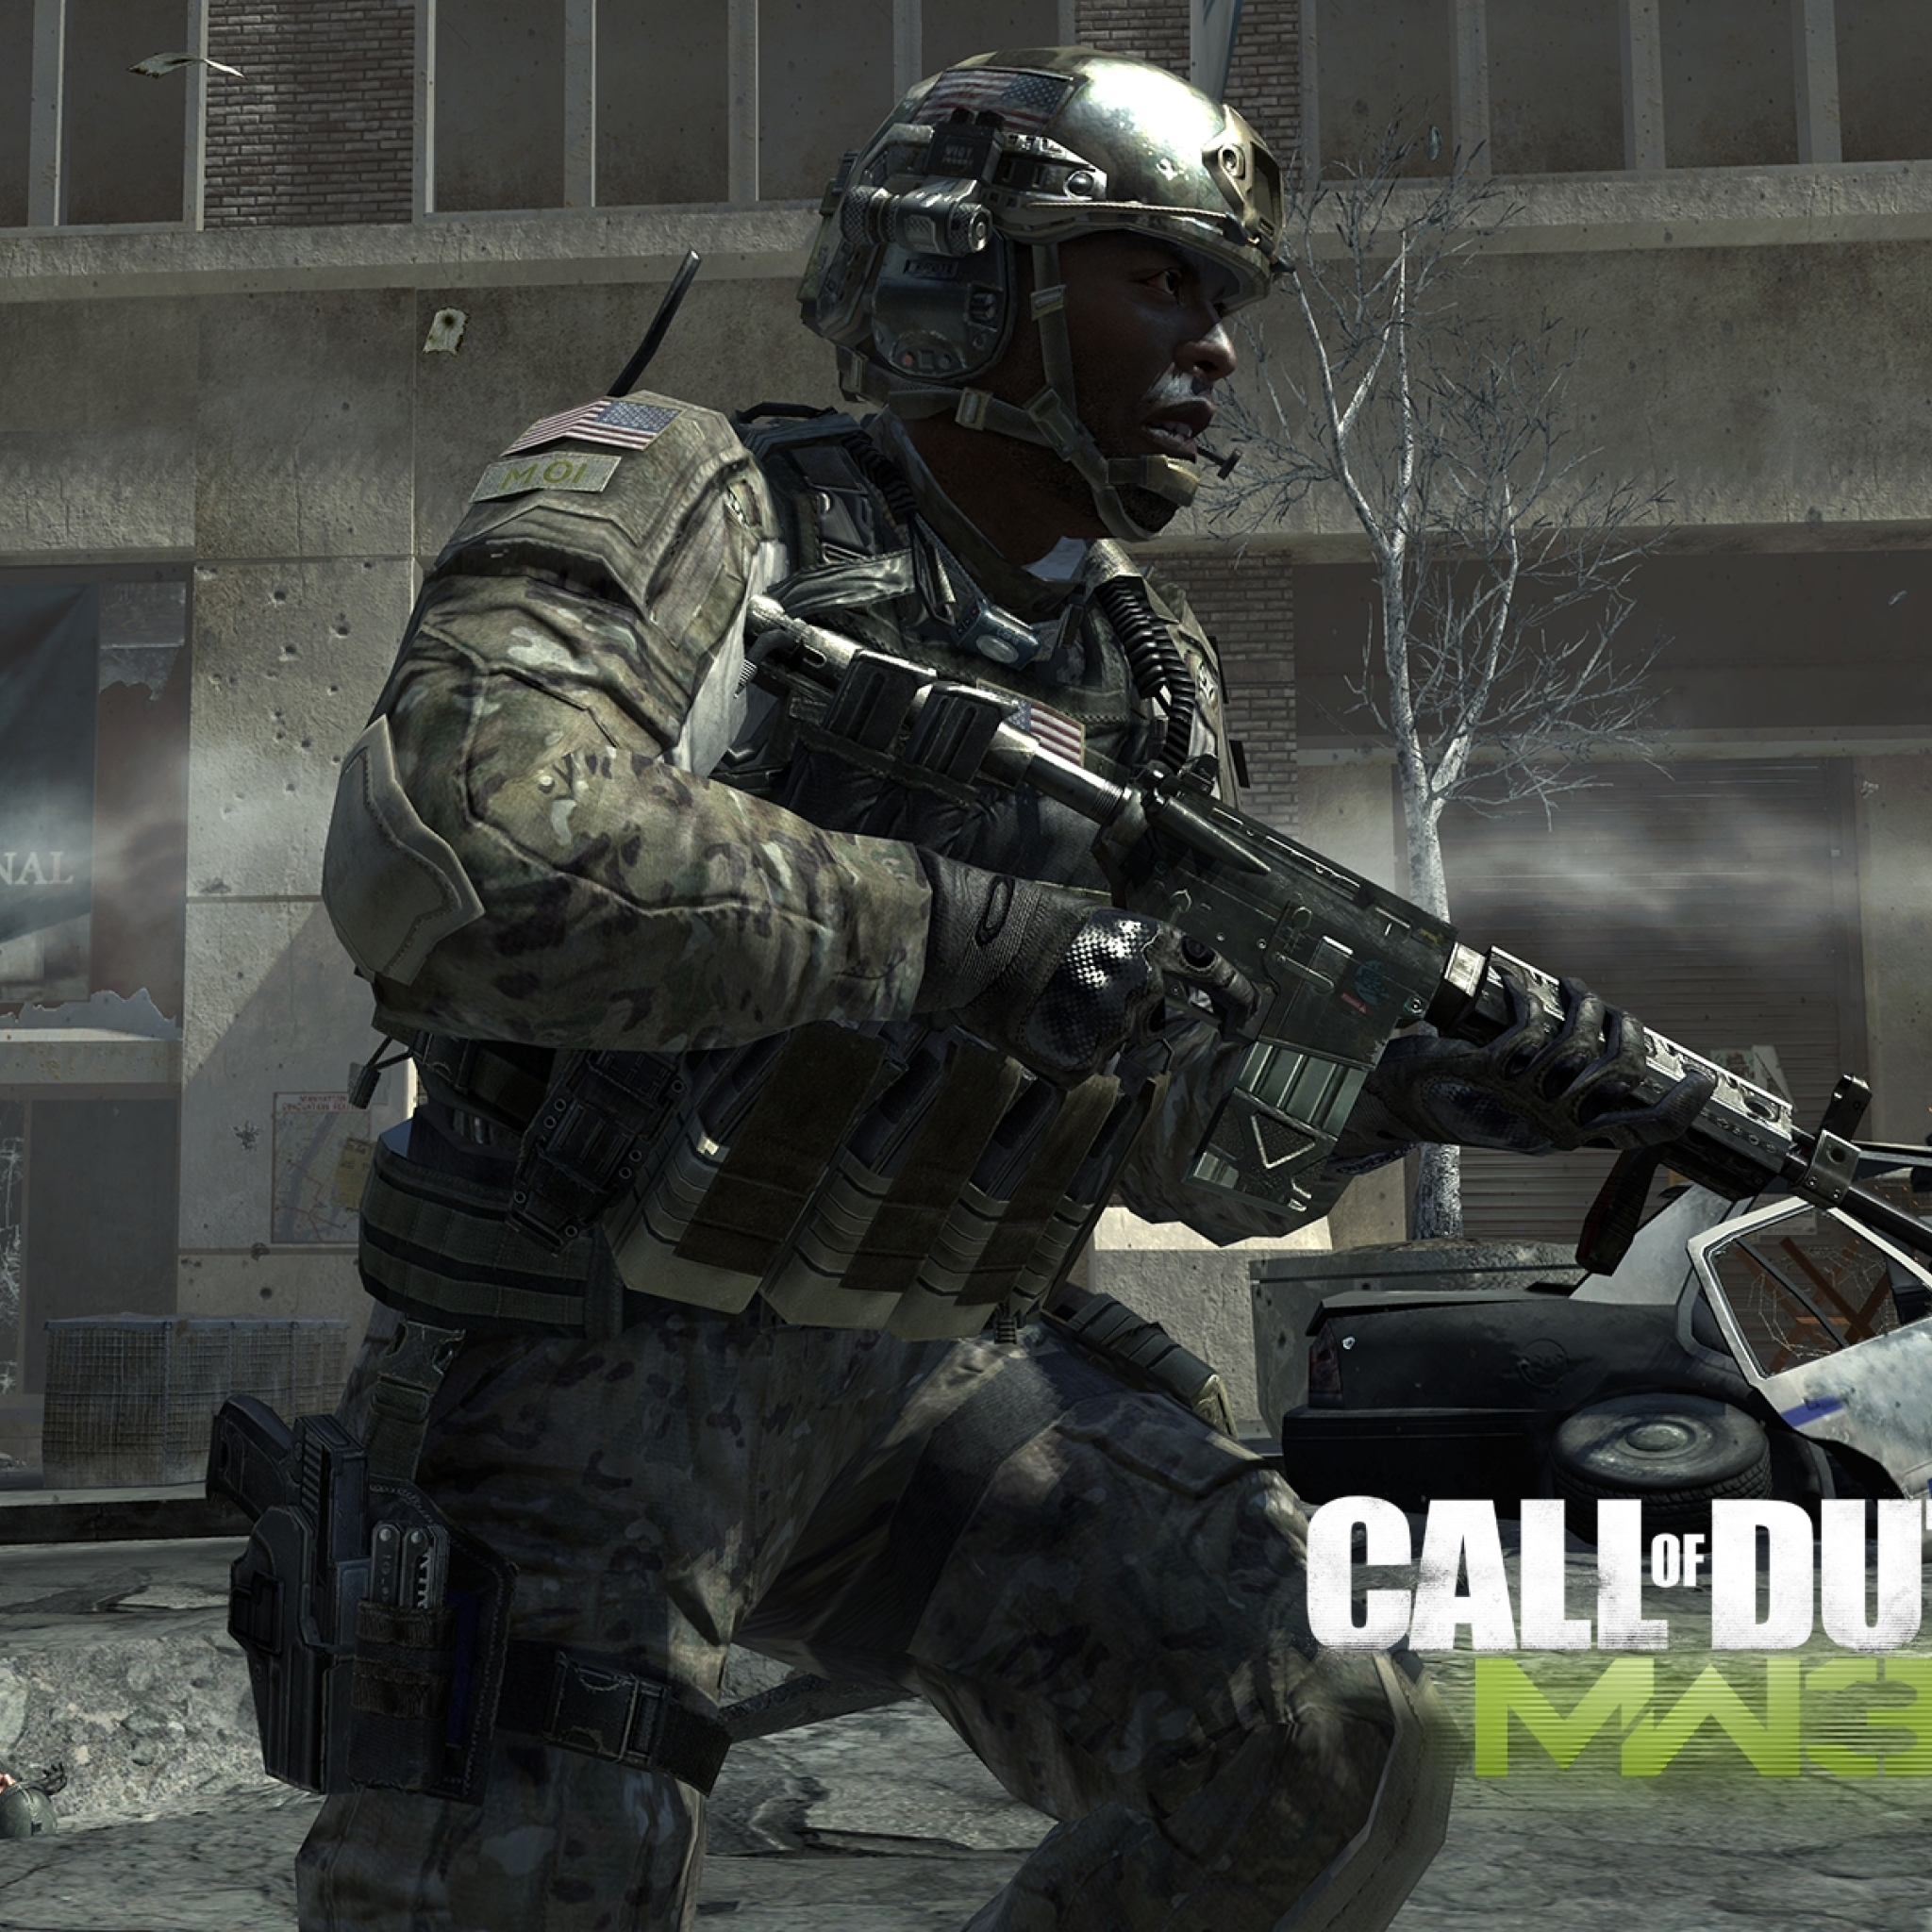 call of duty modern warfare 3 sol rs bank machines ZmhtZWuUmZqaraWkpJRnZWltrWdlaW0